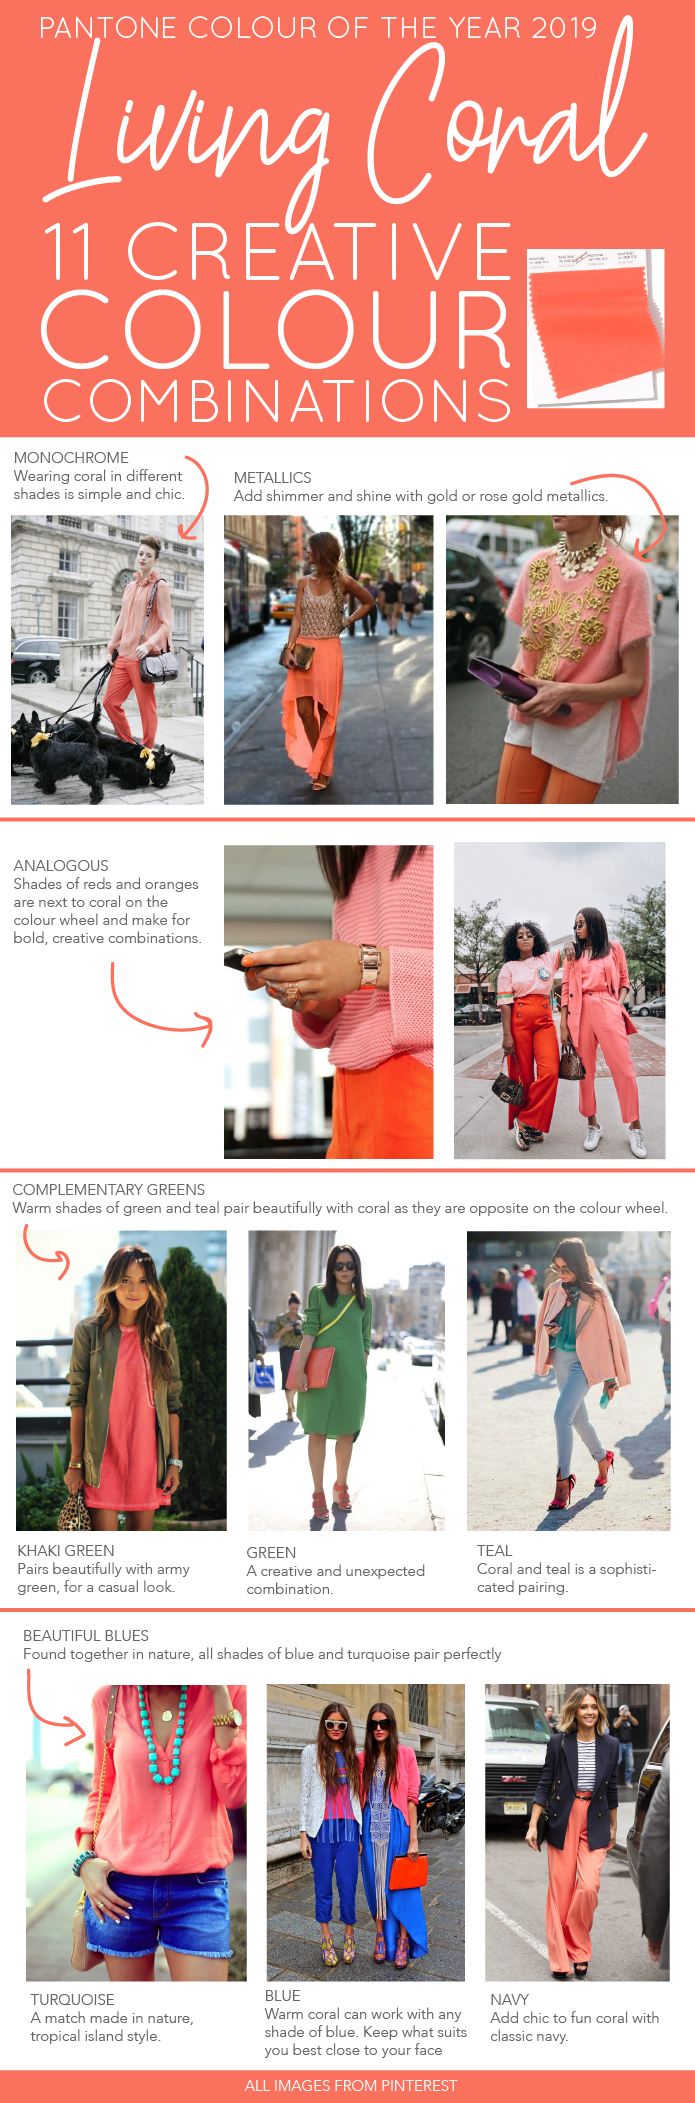 Living Coral Colour Combinations